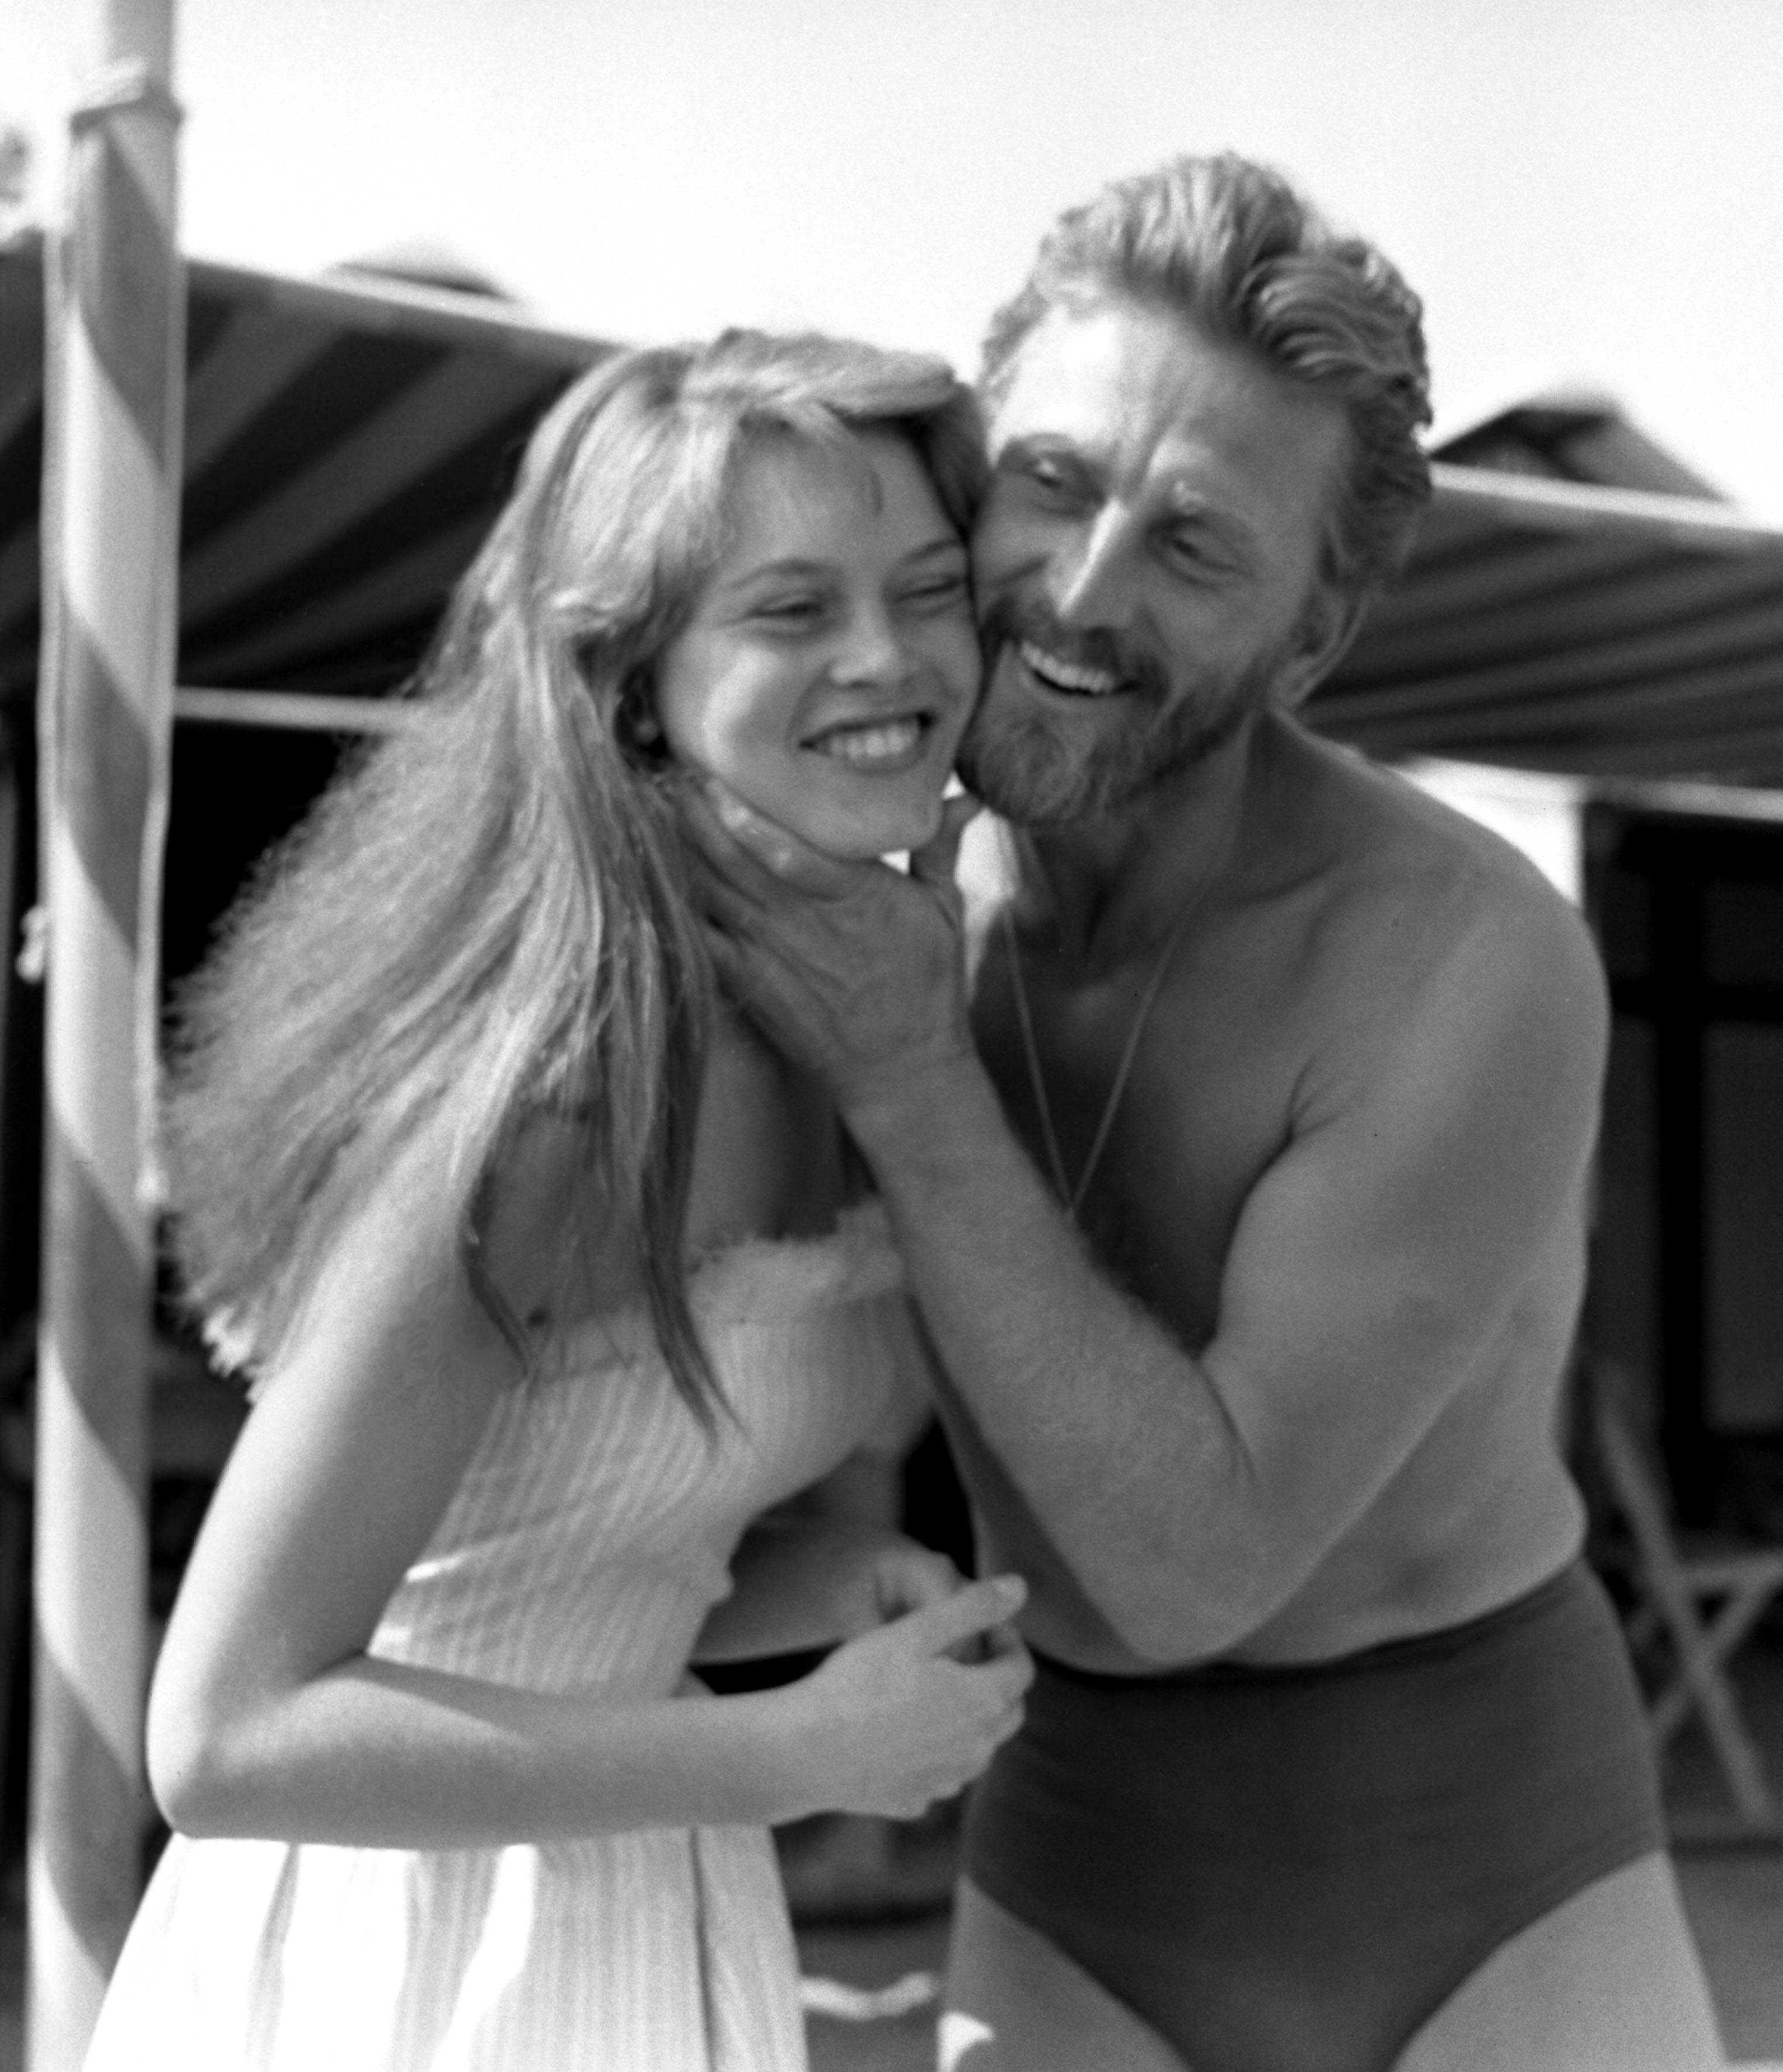 brigitte bardot nude - page 3 pictures, naked, oops, topless, bikini